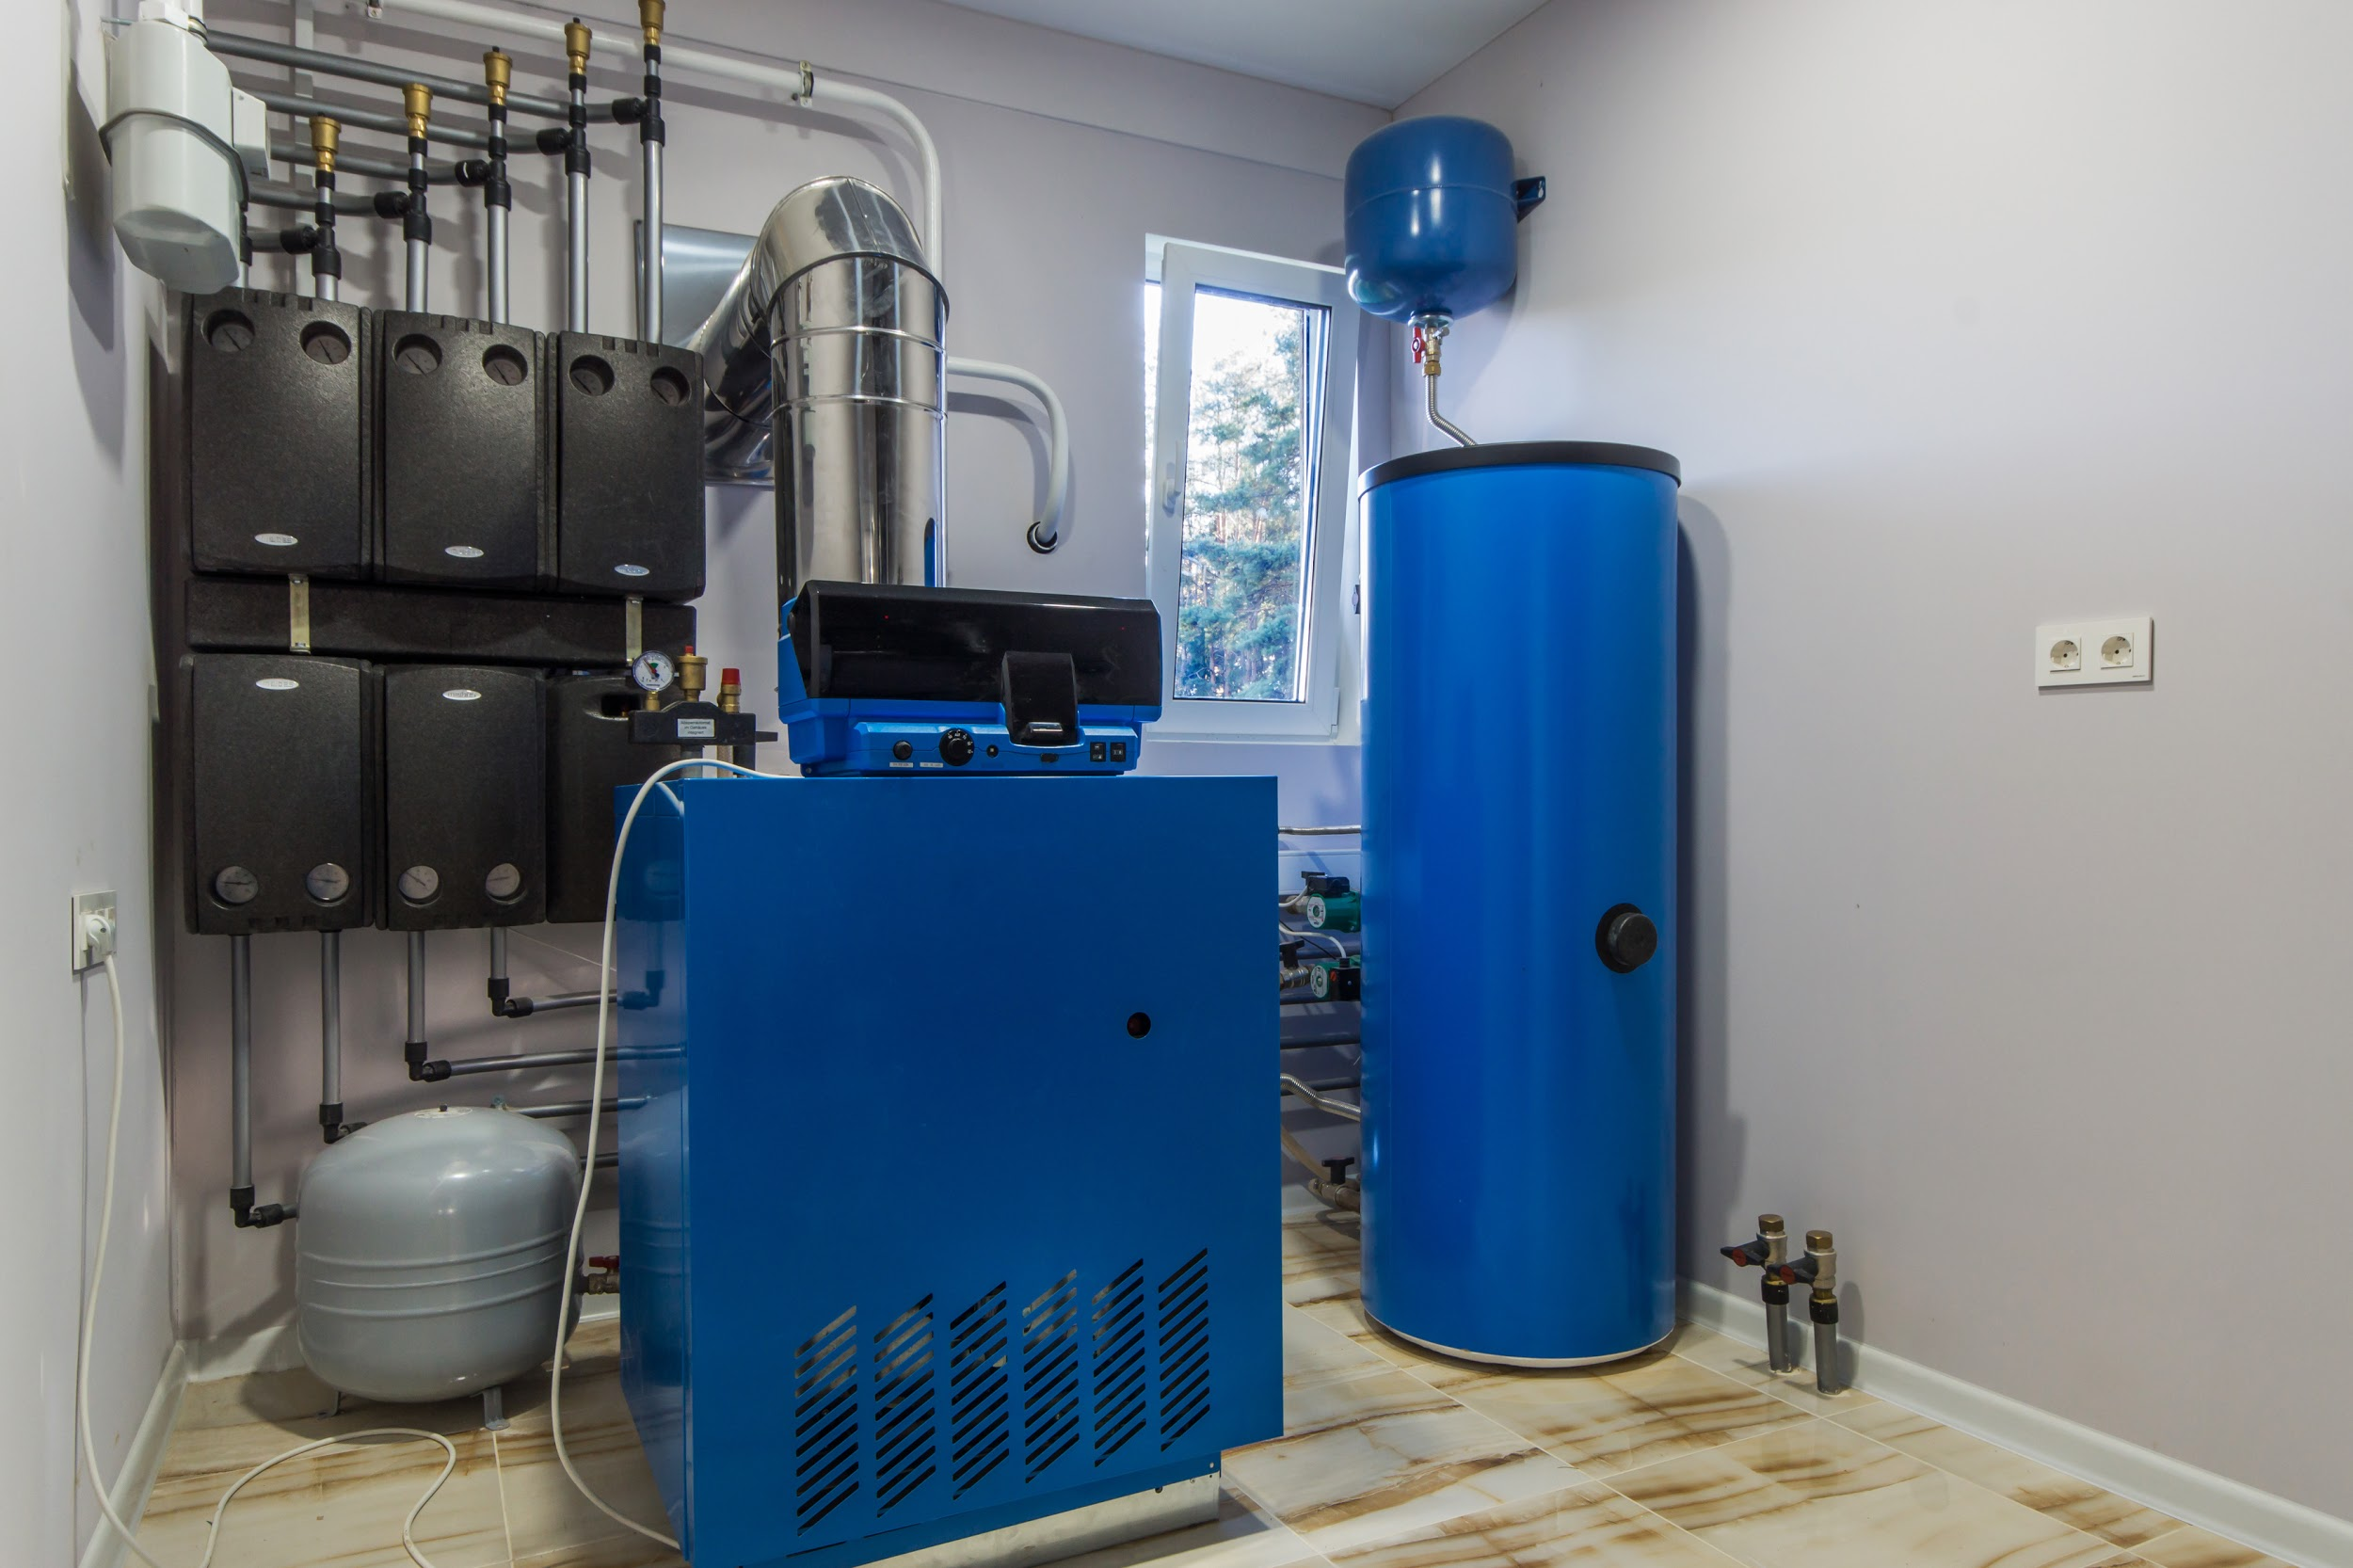 Heating system with hot water thermal storage tank